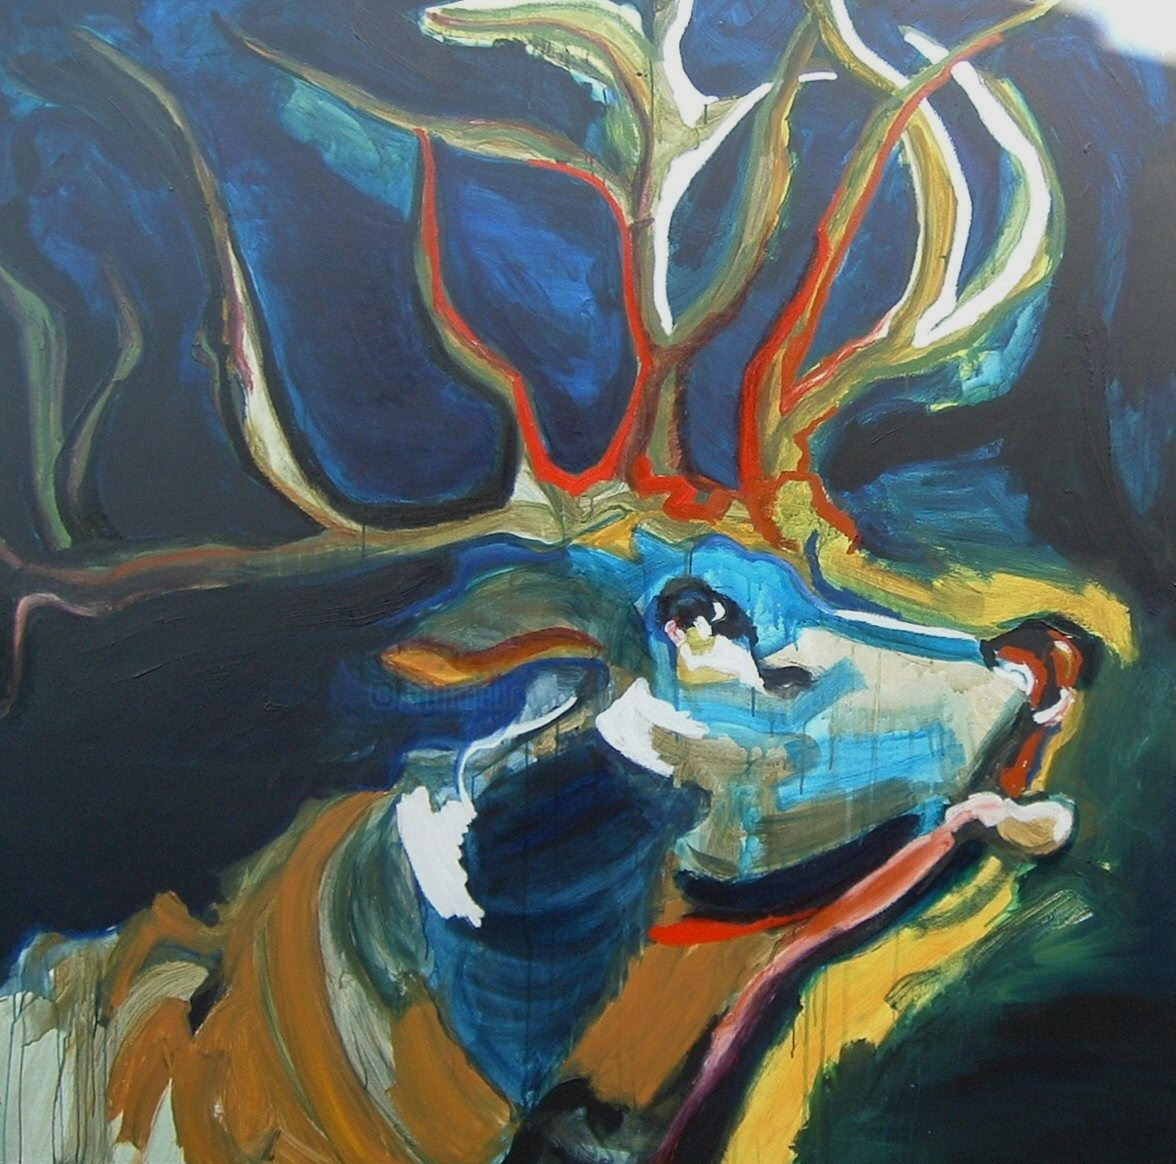 Le grand cerf - Painting,  170x170x5 cm ©2005 by Cécile Coutant -                                                                    Figurative Art, Expressionism, Canvas, Animals